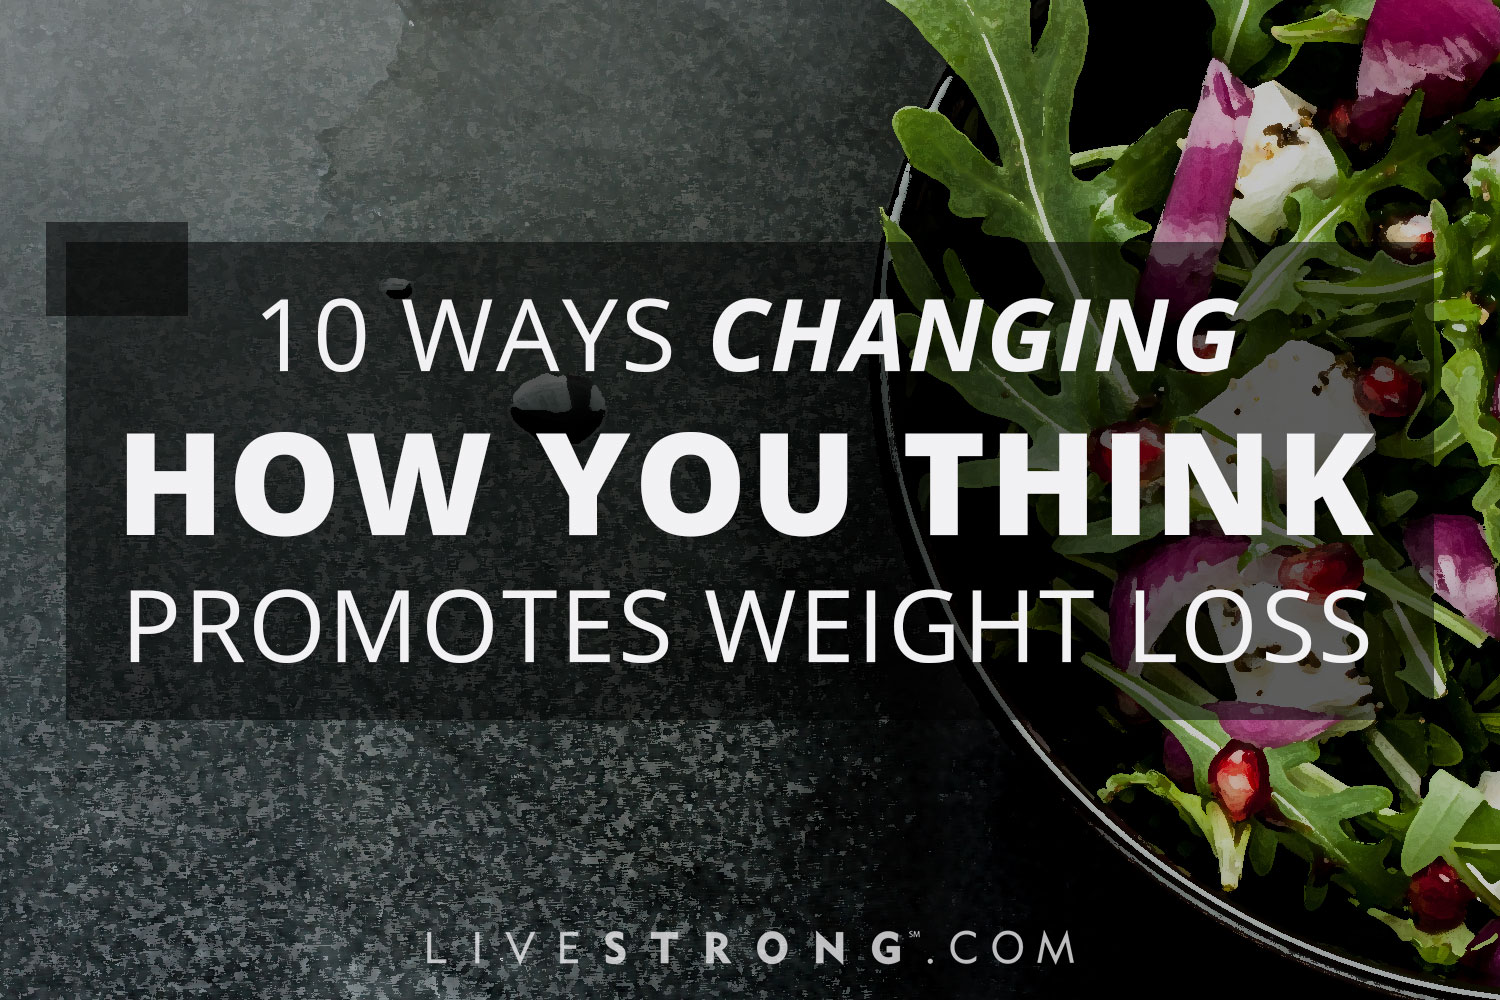 Bodymate herbal loss product weight - 10 Ways Changing How You Think Promotes Weight Loss